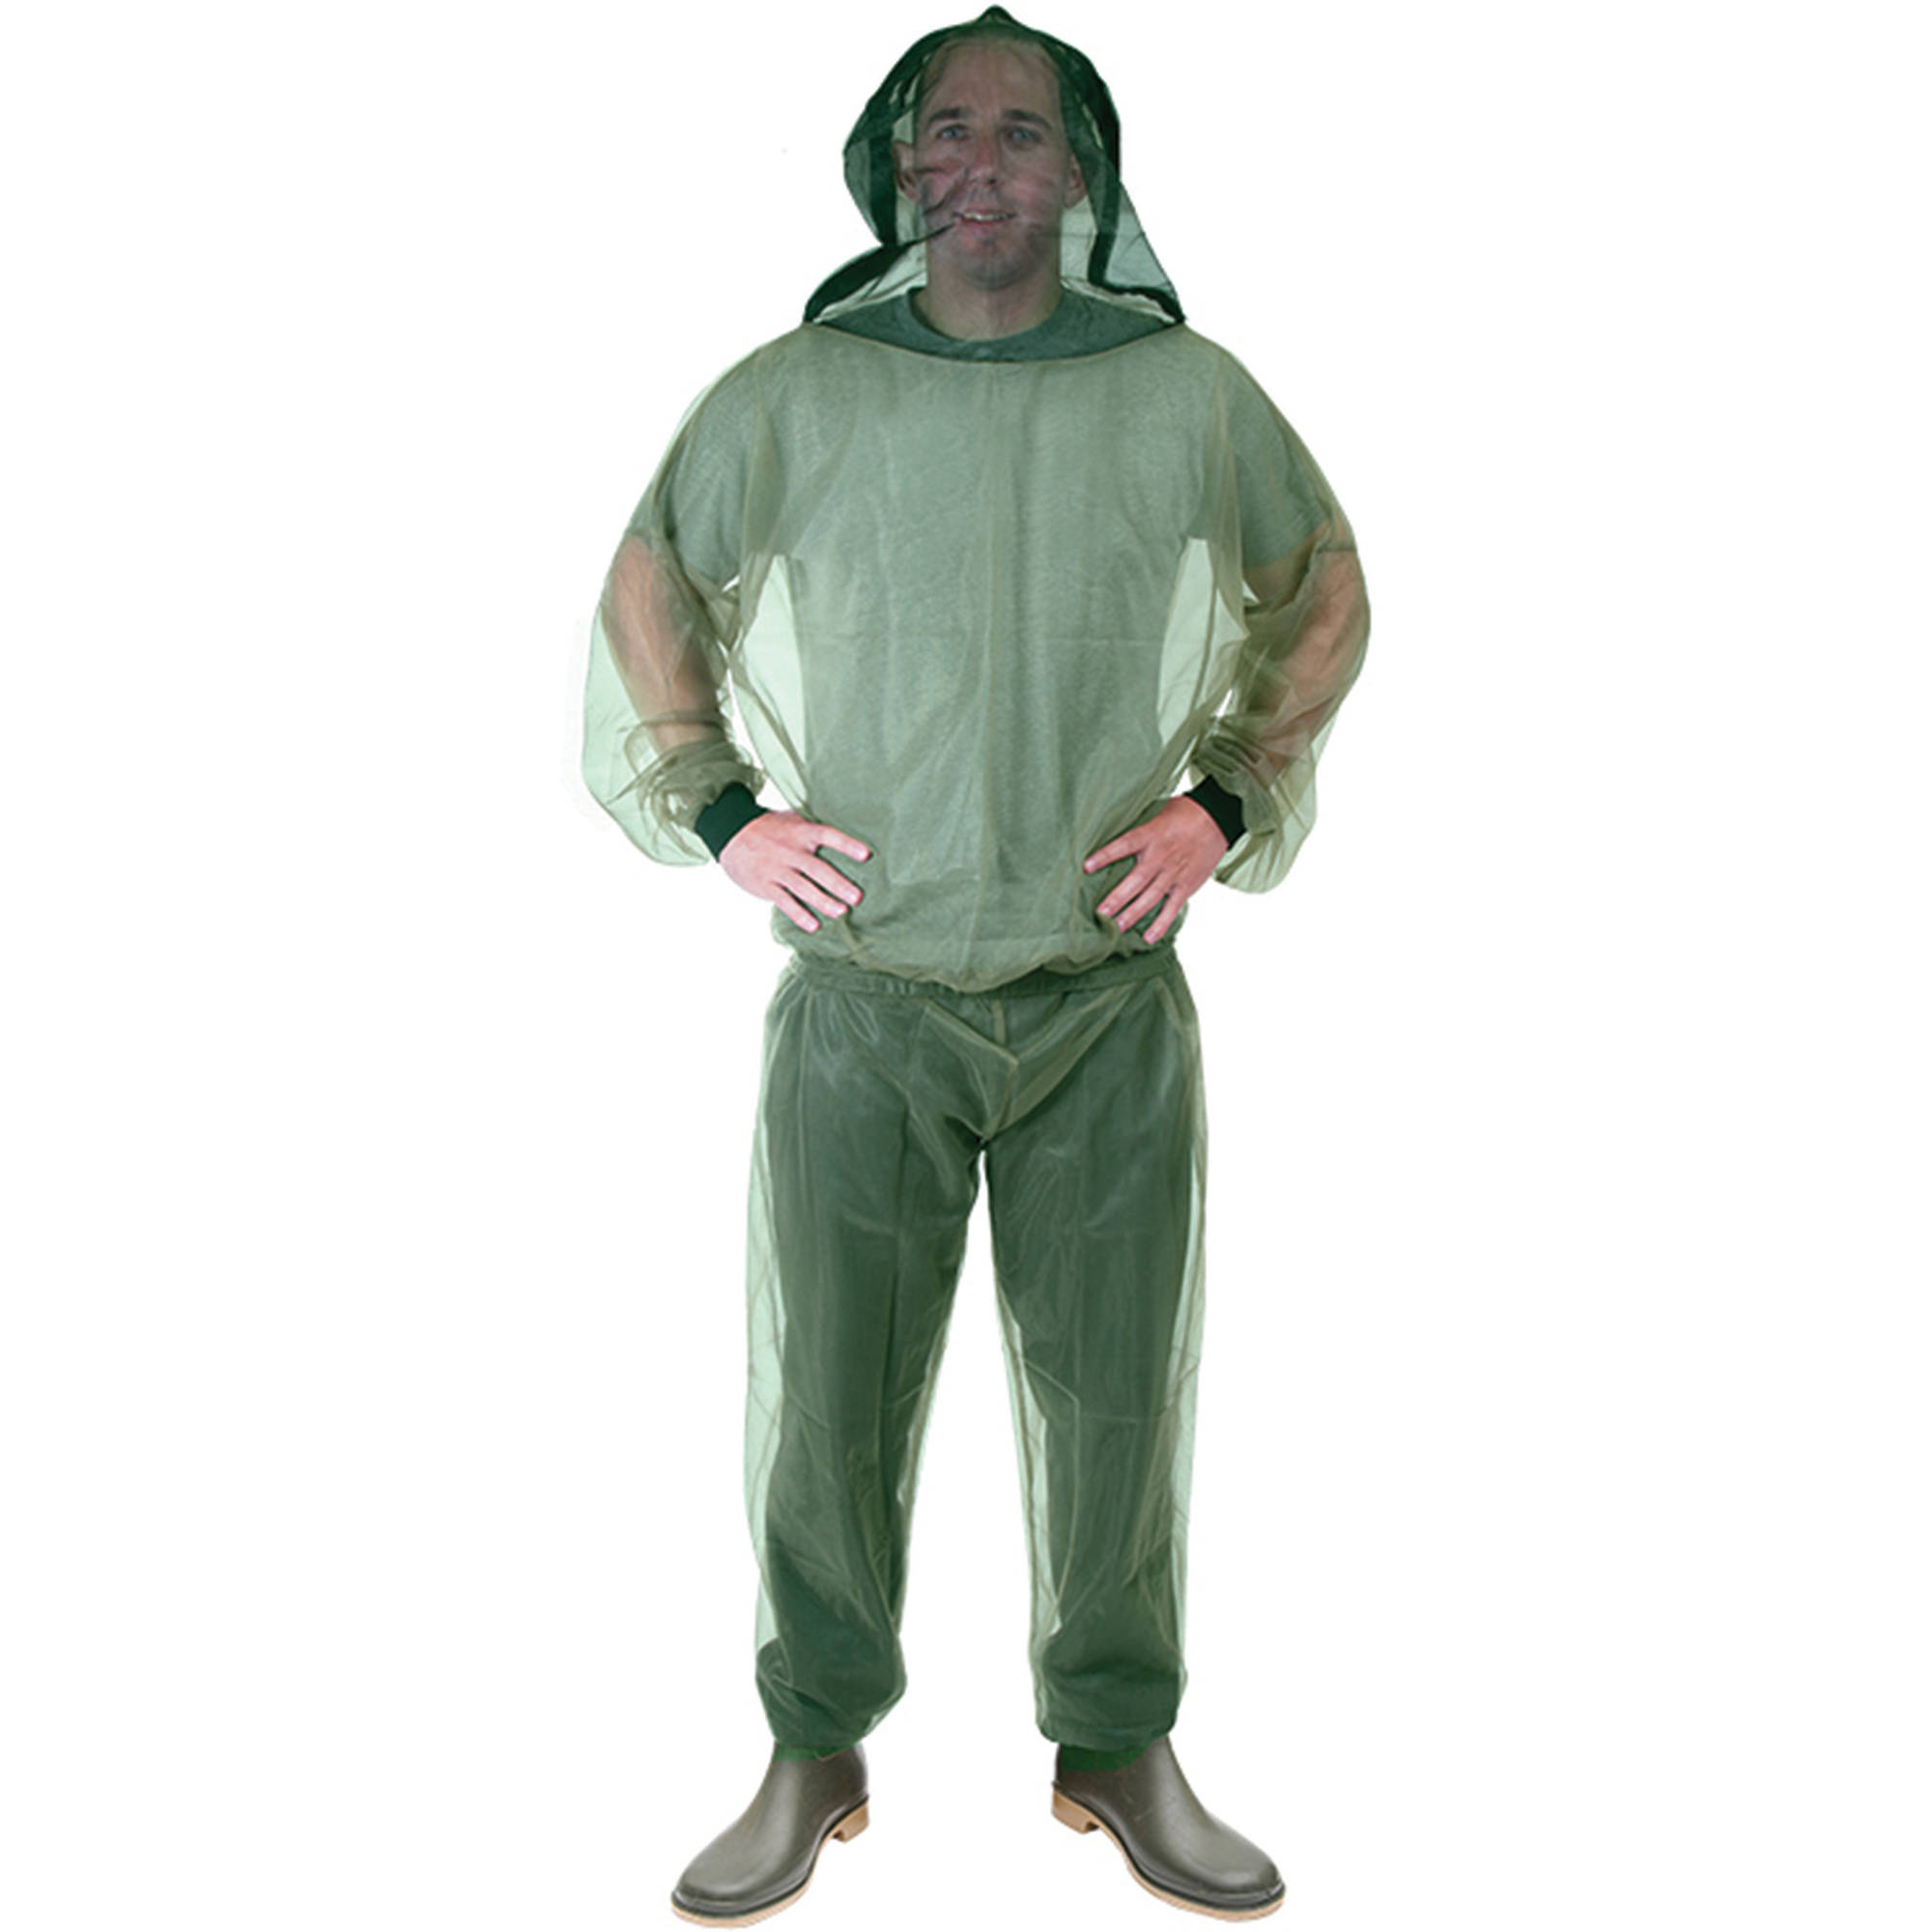 Stansport Mosquito Suit by Stansport